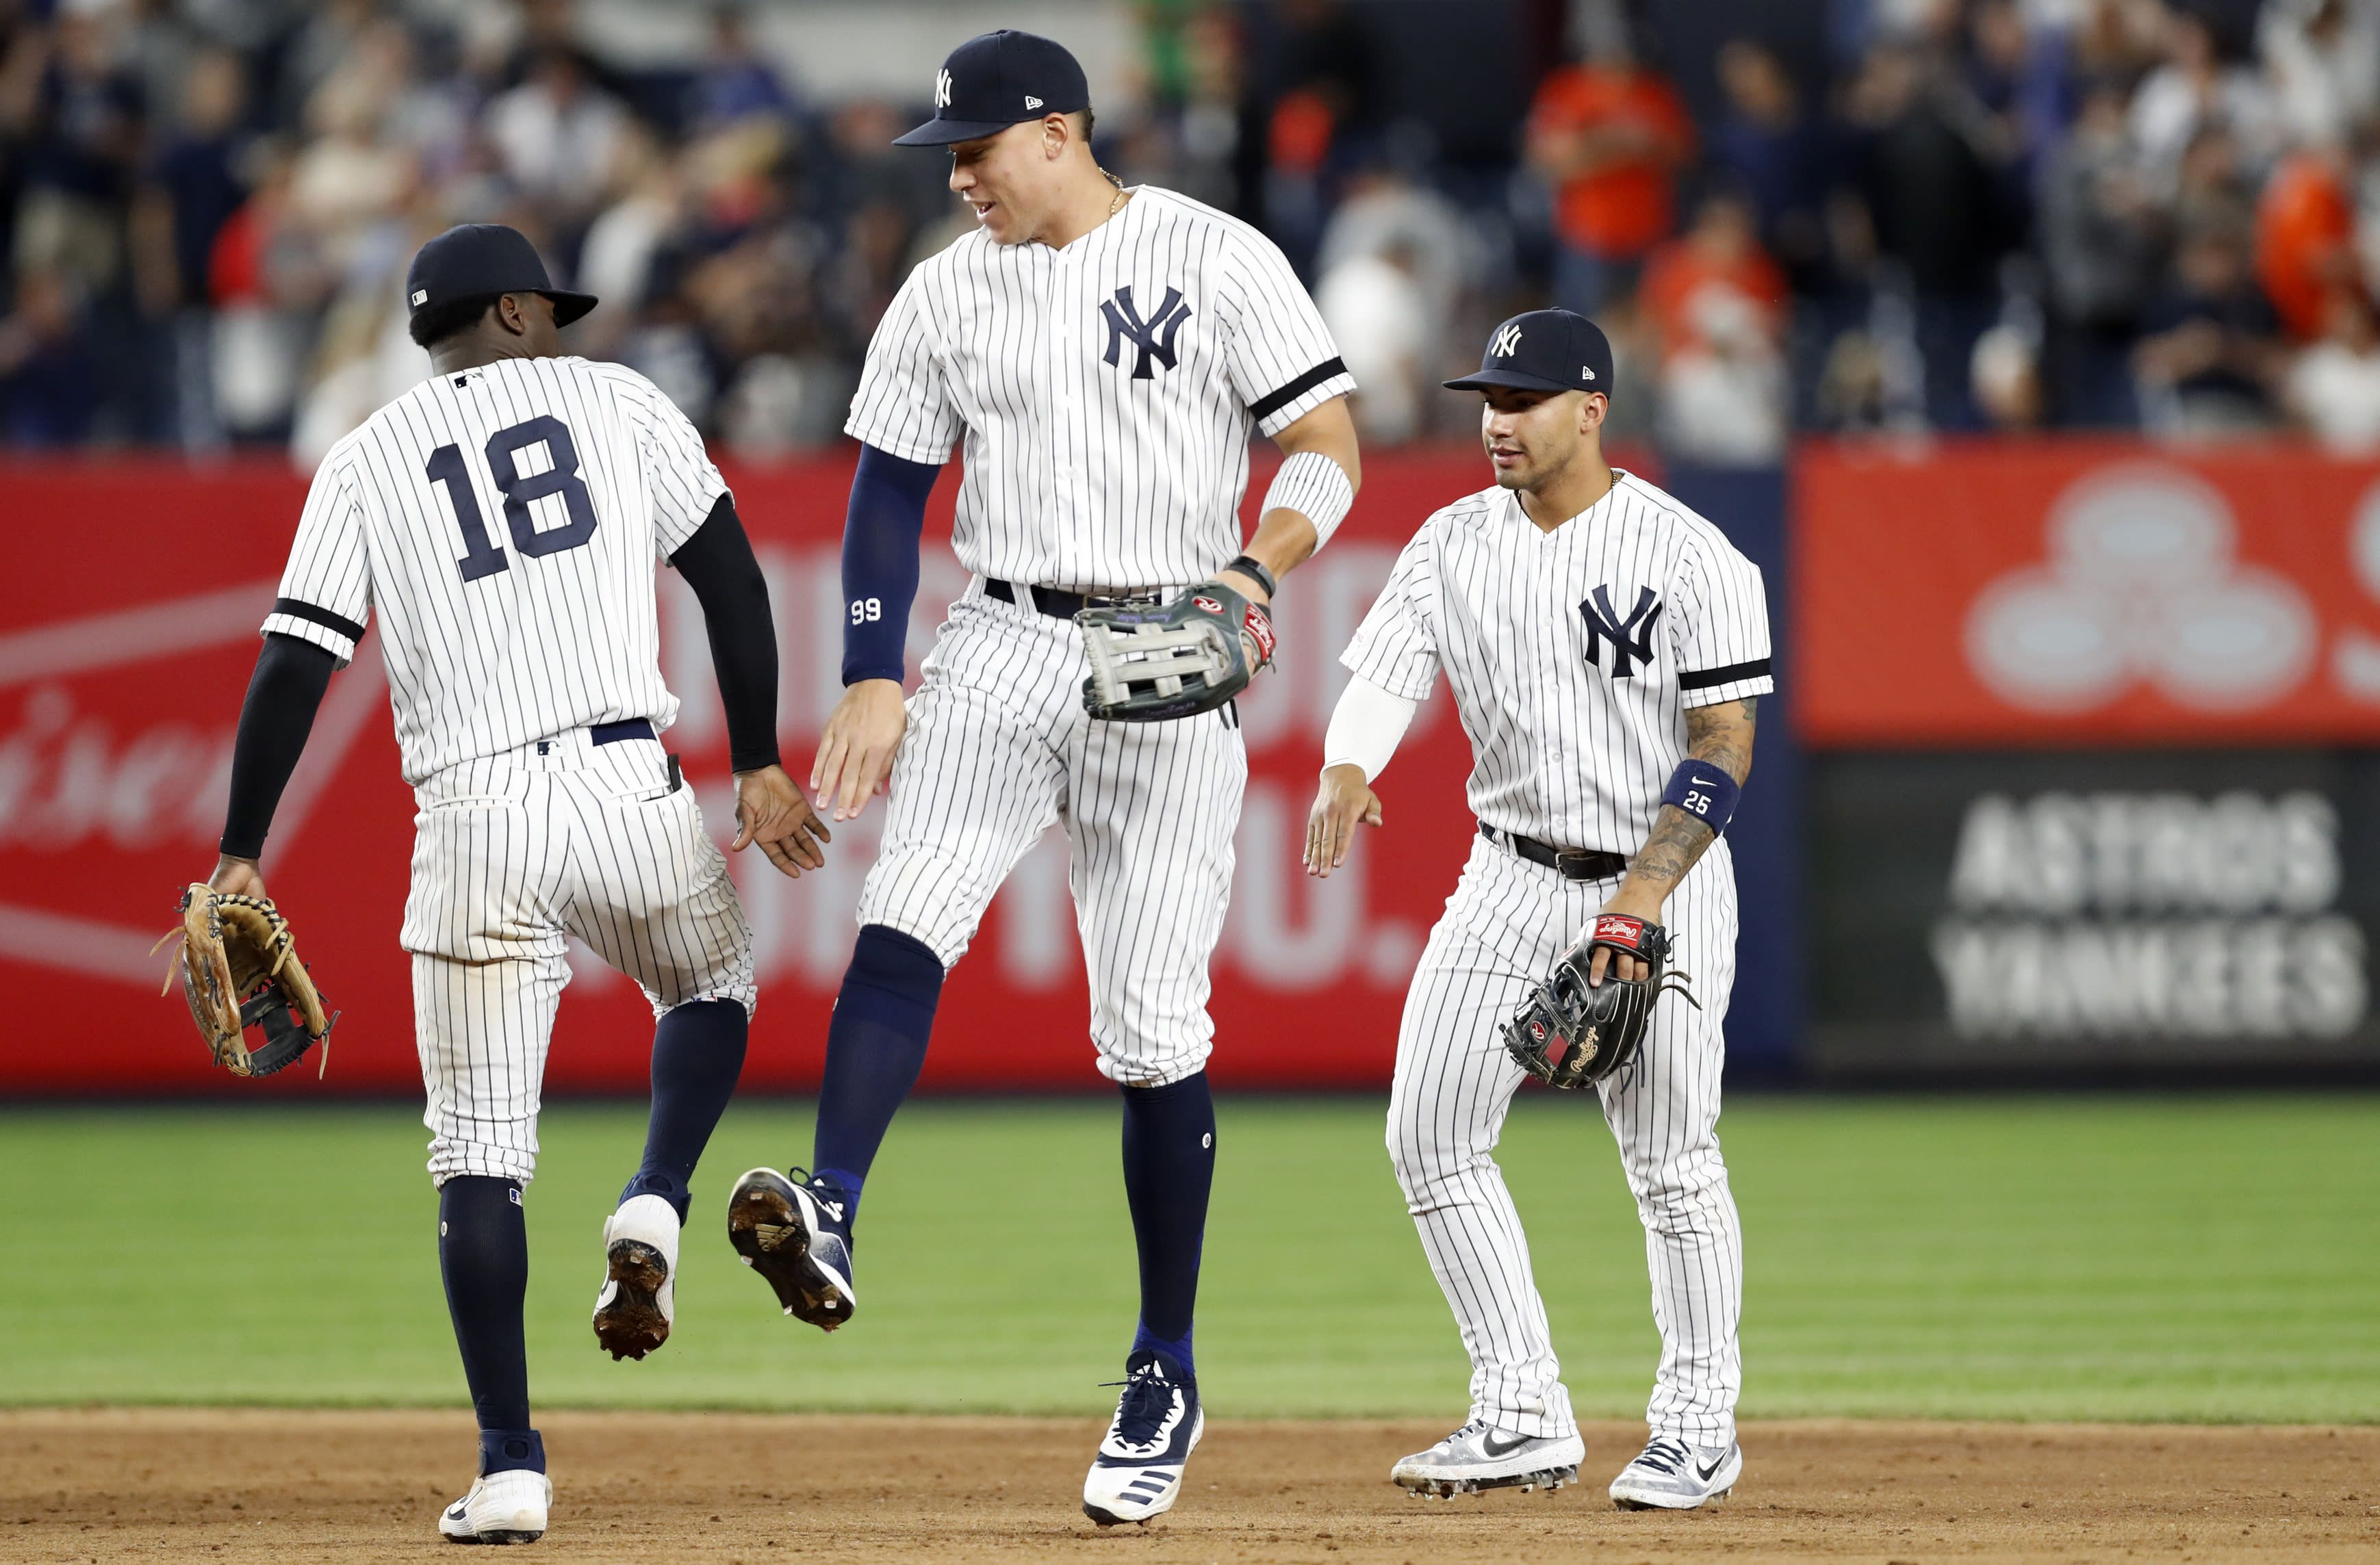 6448cfaf90aa82 The Yankees don't need Aaron Judge to win, but they need all the depth they  can get